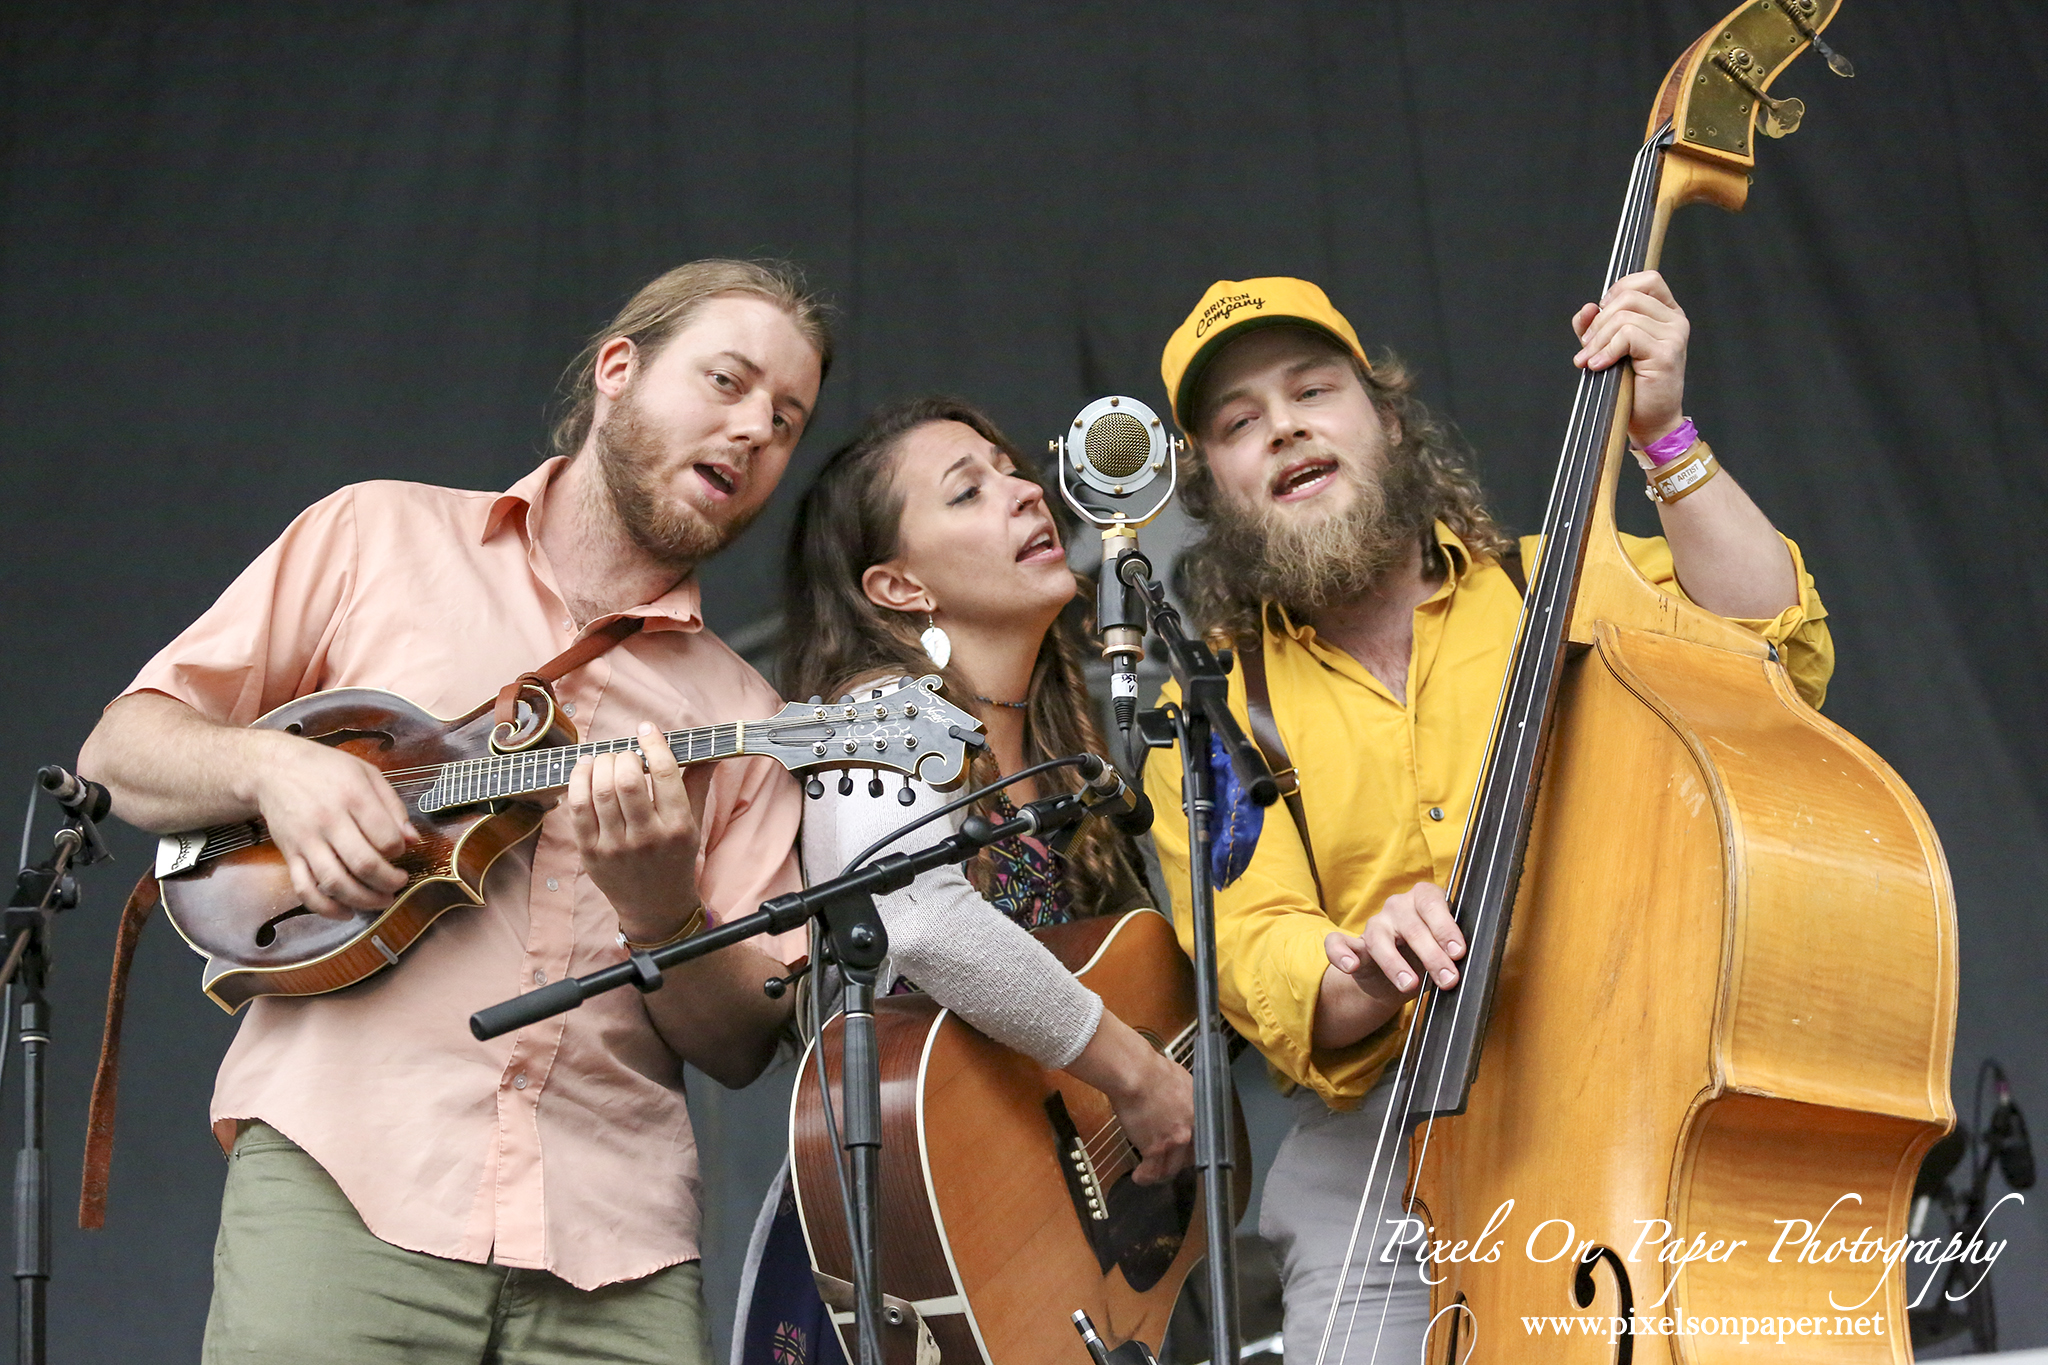 Pixels on Paper Photography Merlefest 2016 Lindsay Lou & Flatbelly's photo